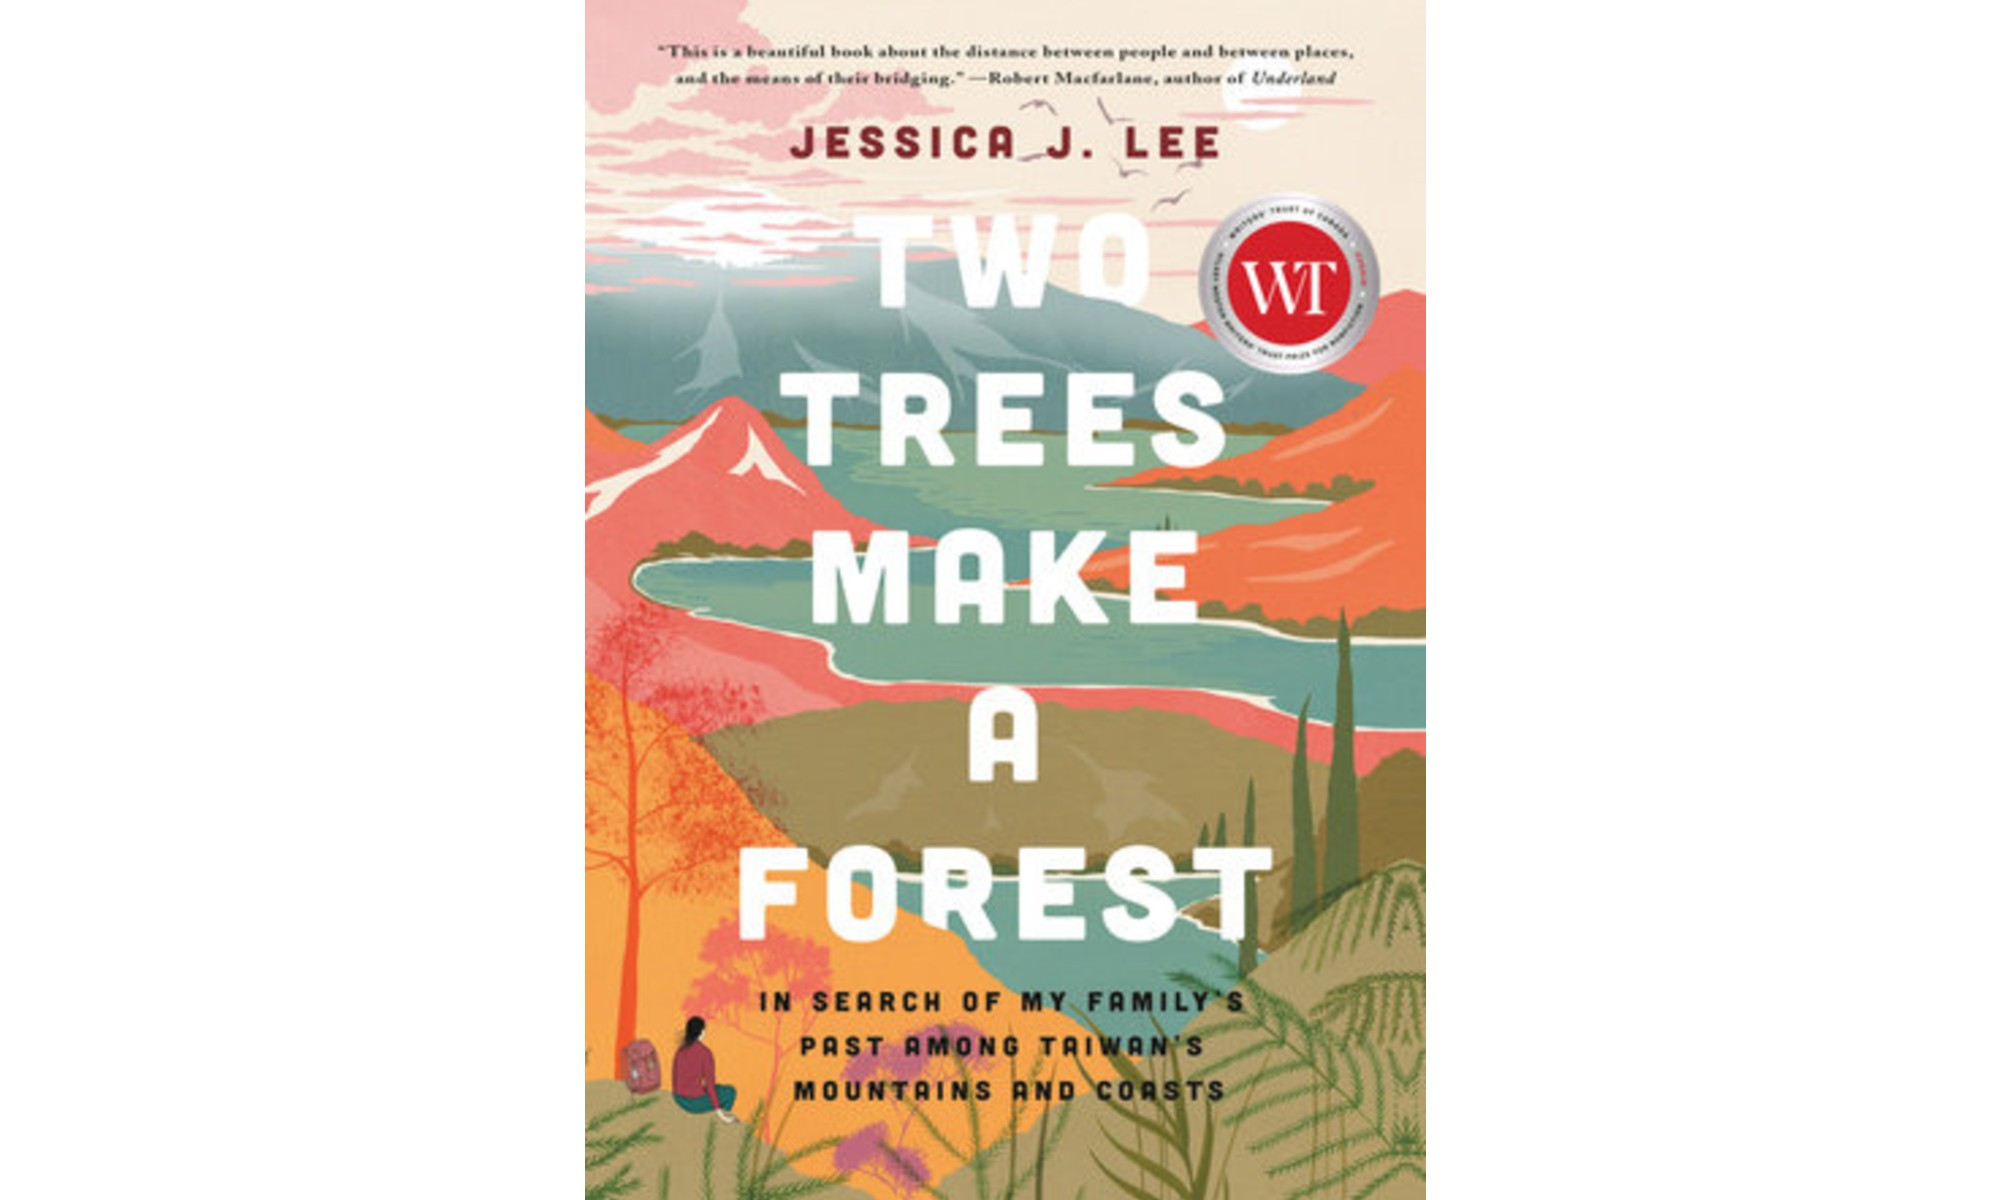 The cover of Jessica J. Lee's Two Trees Make a Forest